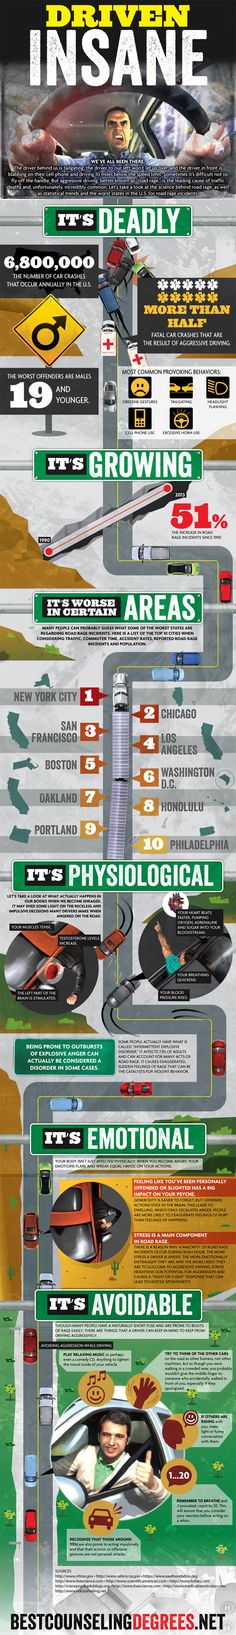 Aggressive Driving Statistics : Getting uncontrollably aggressive, starting to cuss and coarse is quite common for most of us while driving. Behold! Road rage can turn to blight.  > http://infographicsmania.com/aggressive-driving-statistics/?utm_source=Pinterest&utm_medium=ZAKKAS&utm_campaign=SNAP